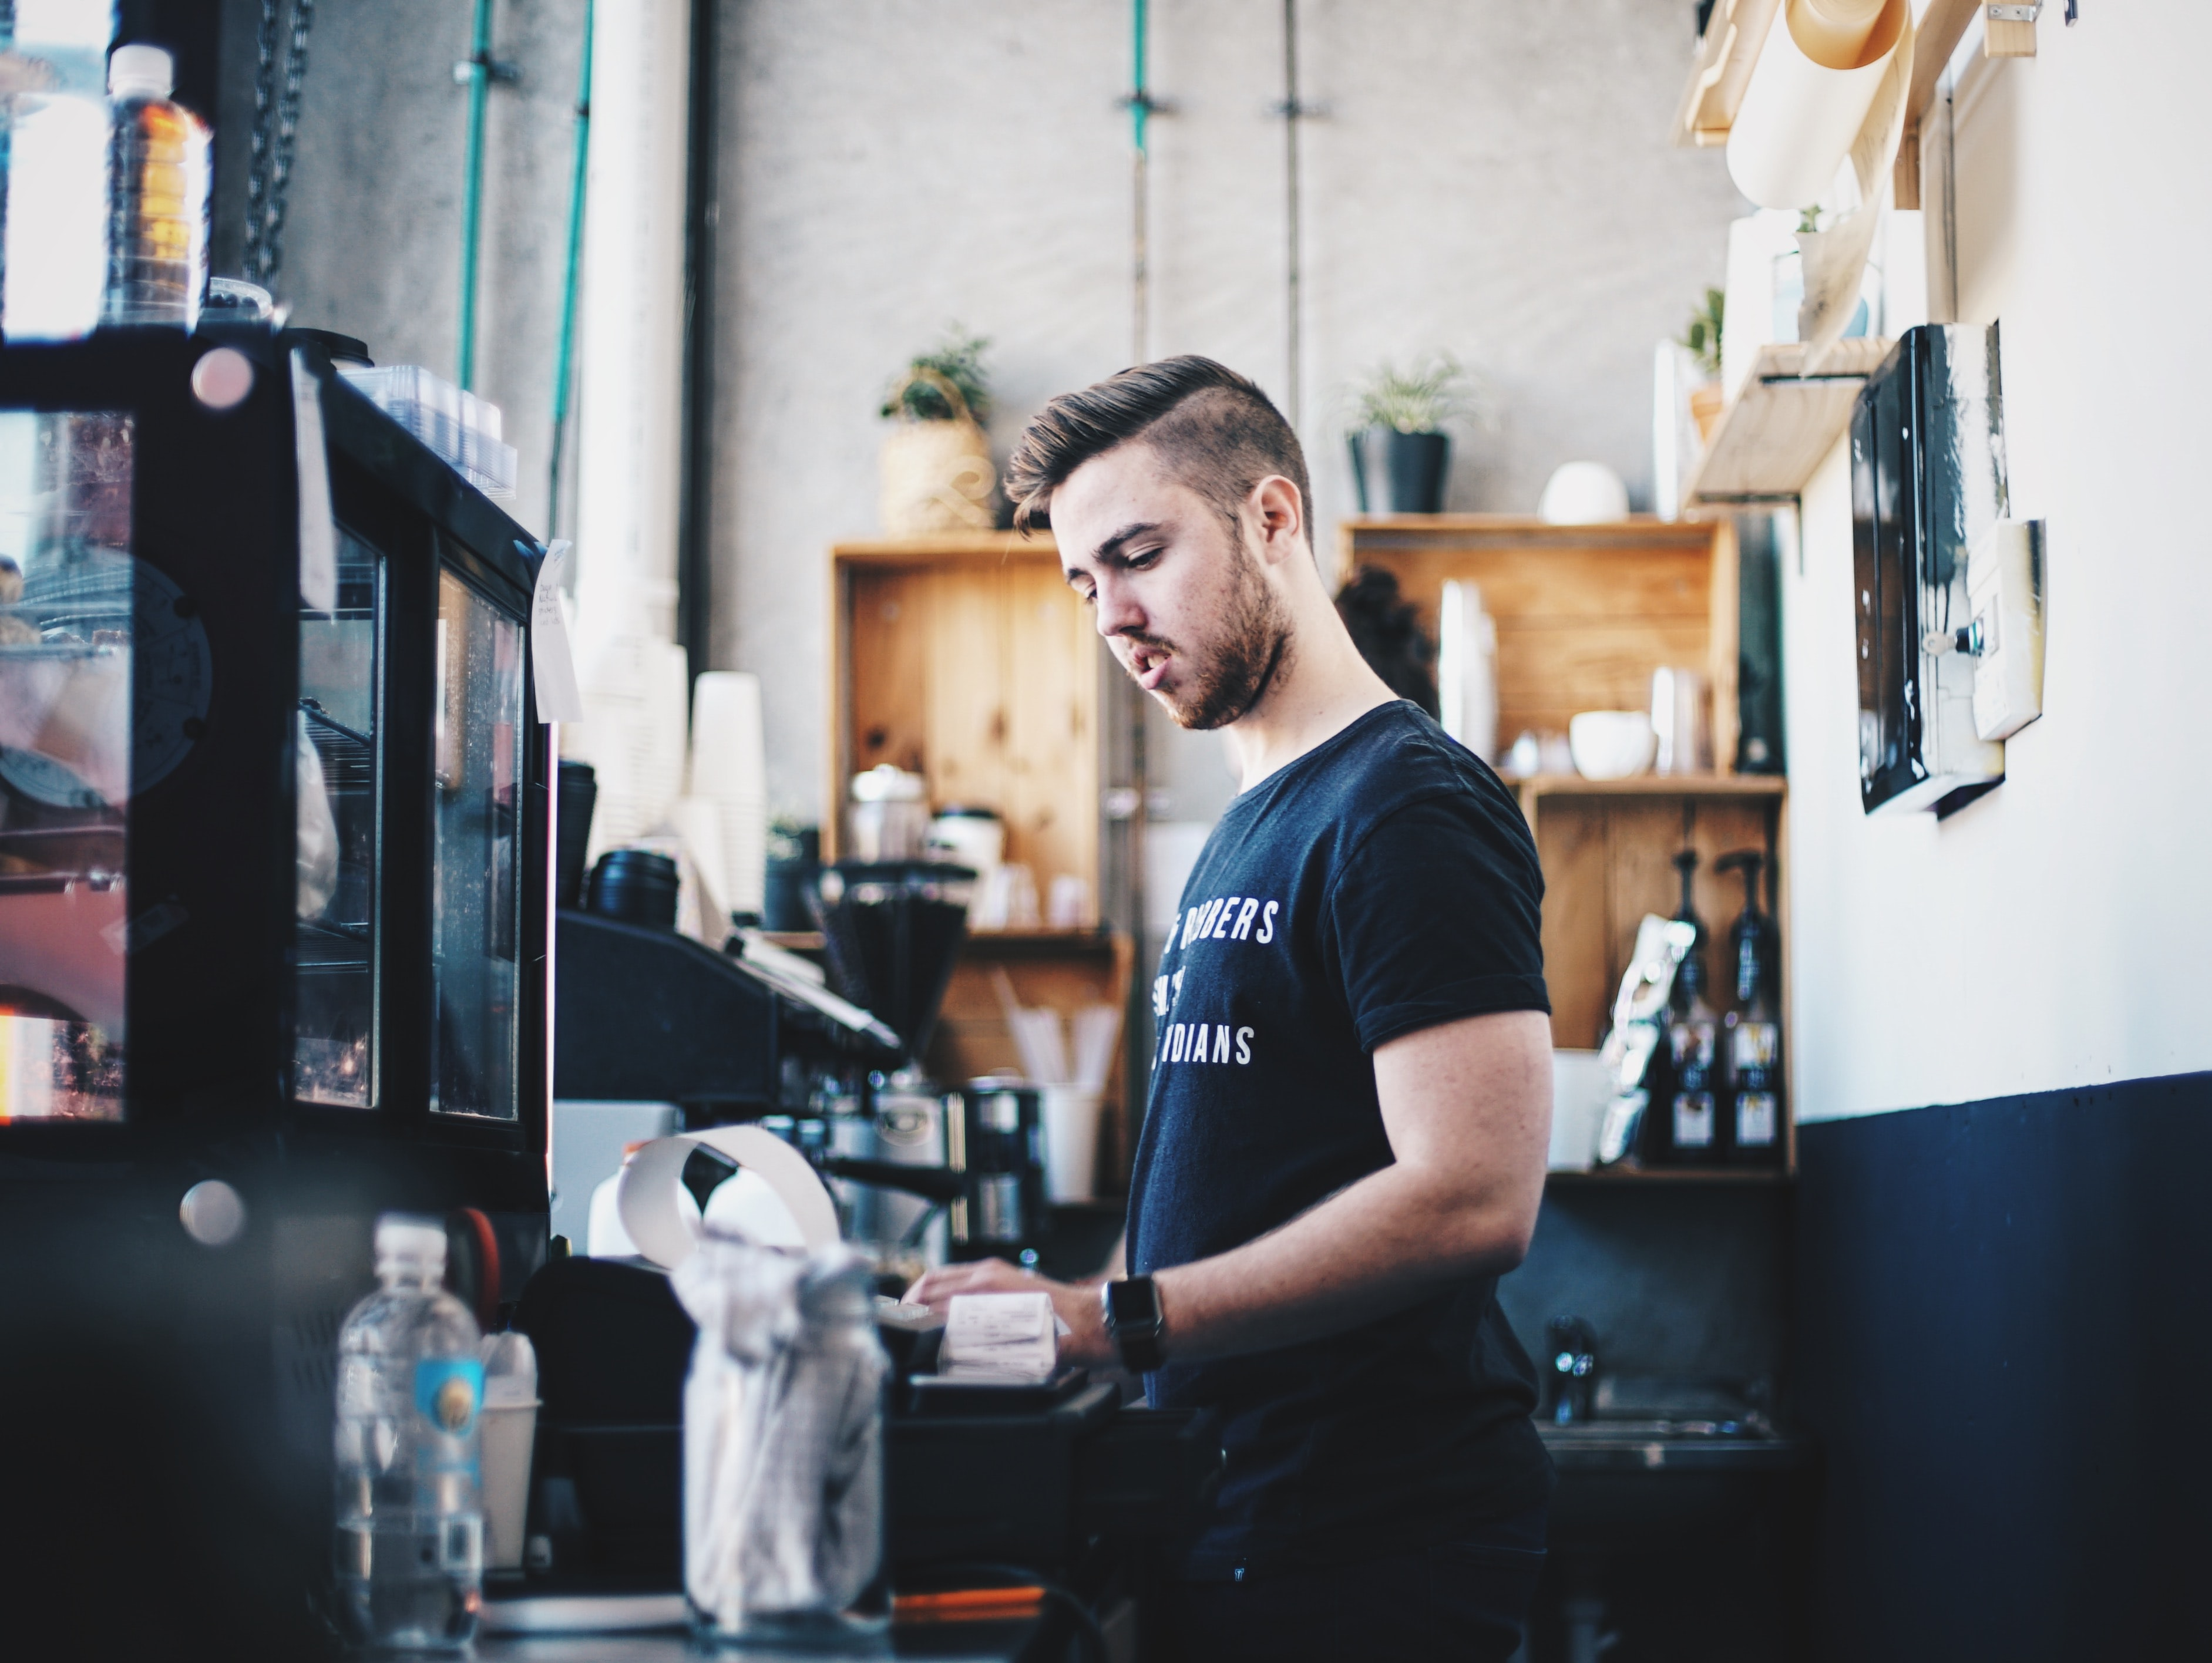 A barista working behind a cafe counter at a hipster coffee shop